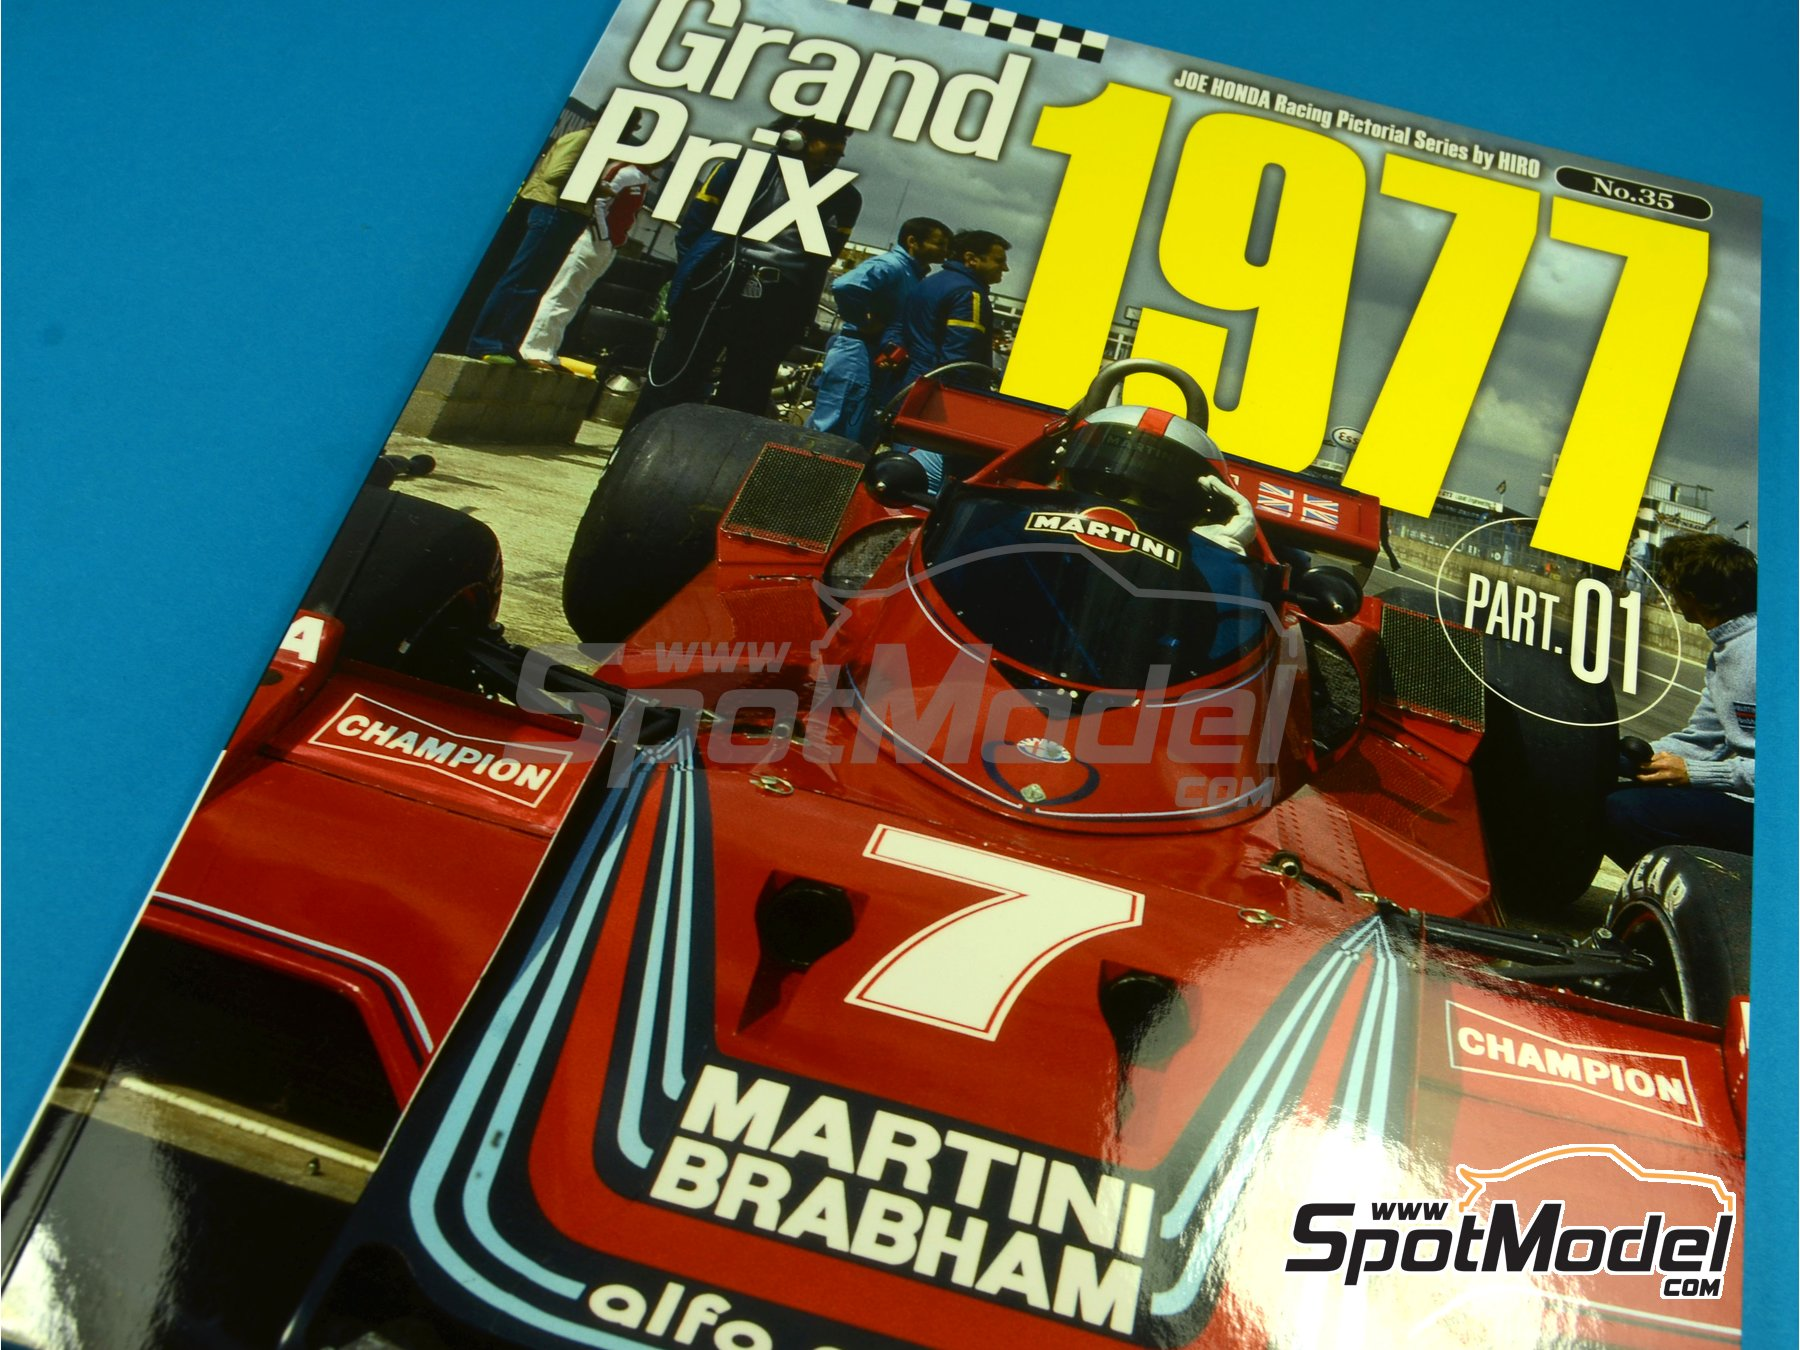 Image 1: Joe Honda Racing Pictorial Series - Grand Prix 1977, Part 01 | Reference / walkaround book manufactured by Model Factory Hiro (ref. MFH-JH35)